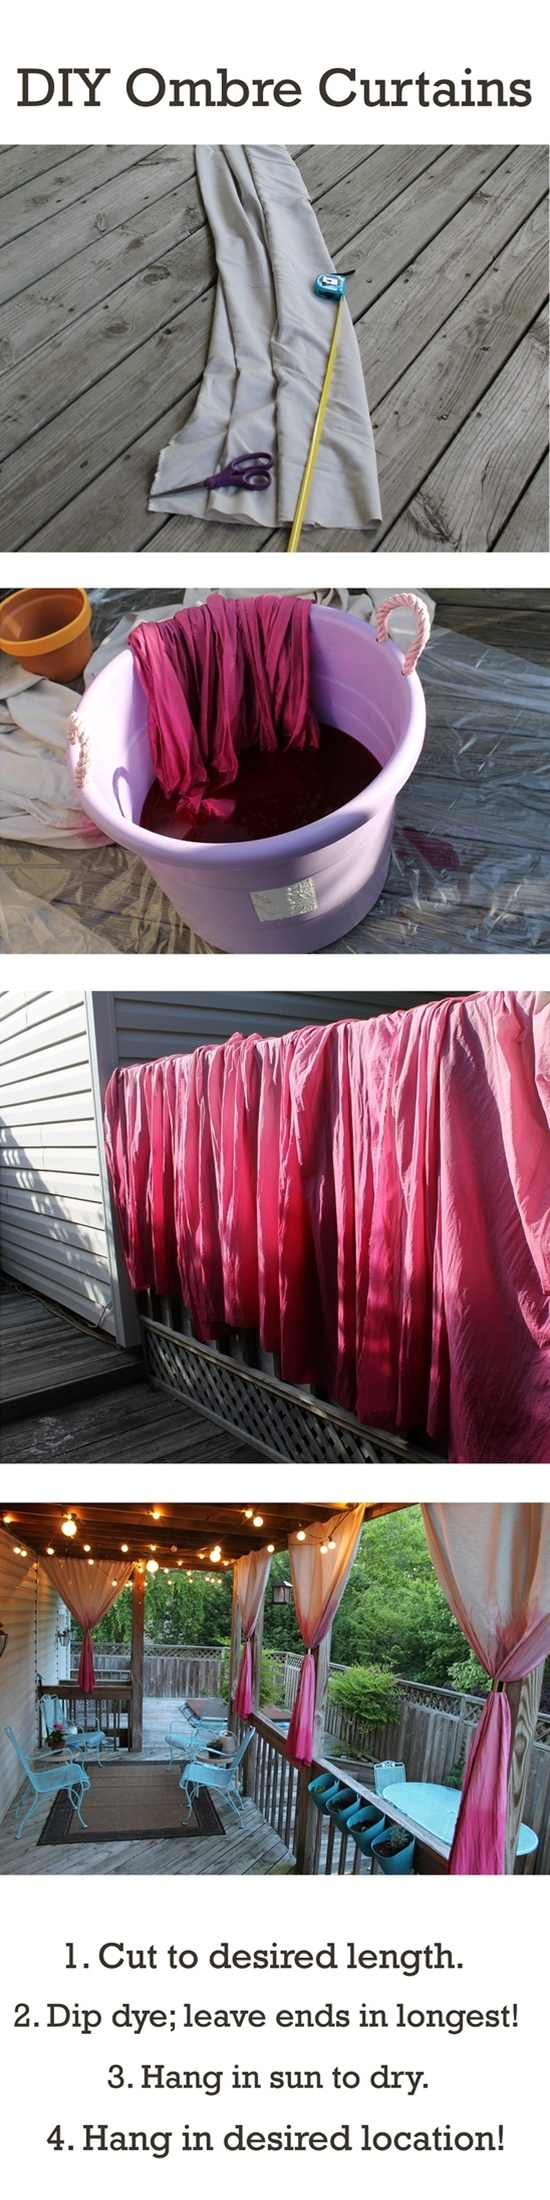 DIY-Ombre-Curtains